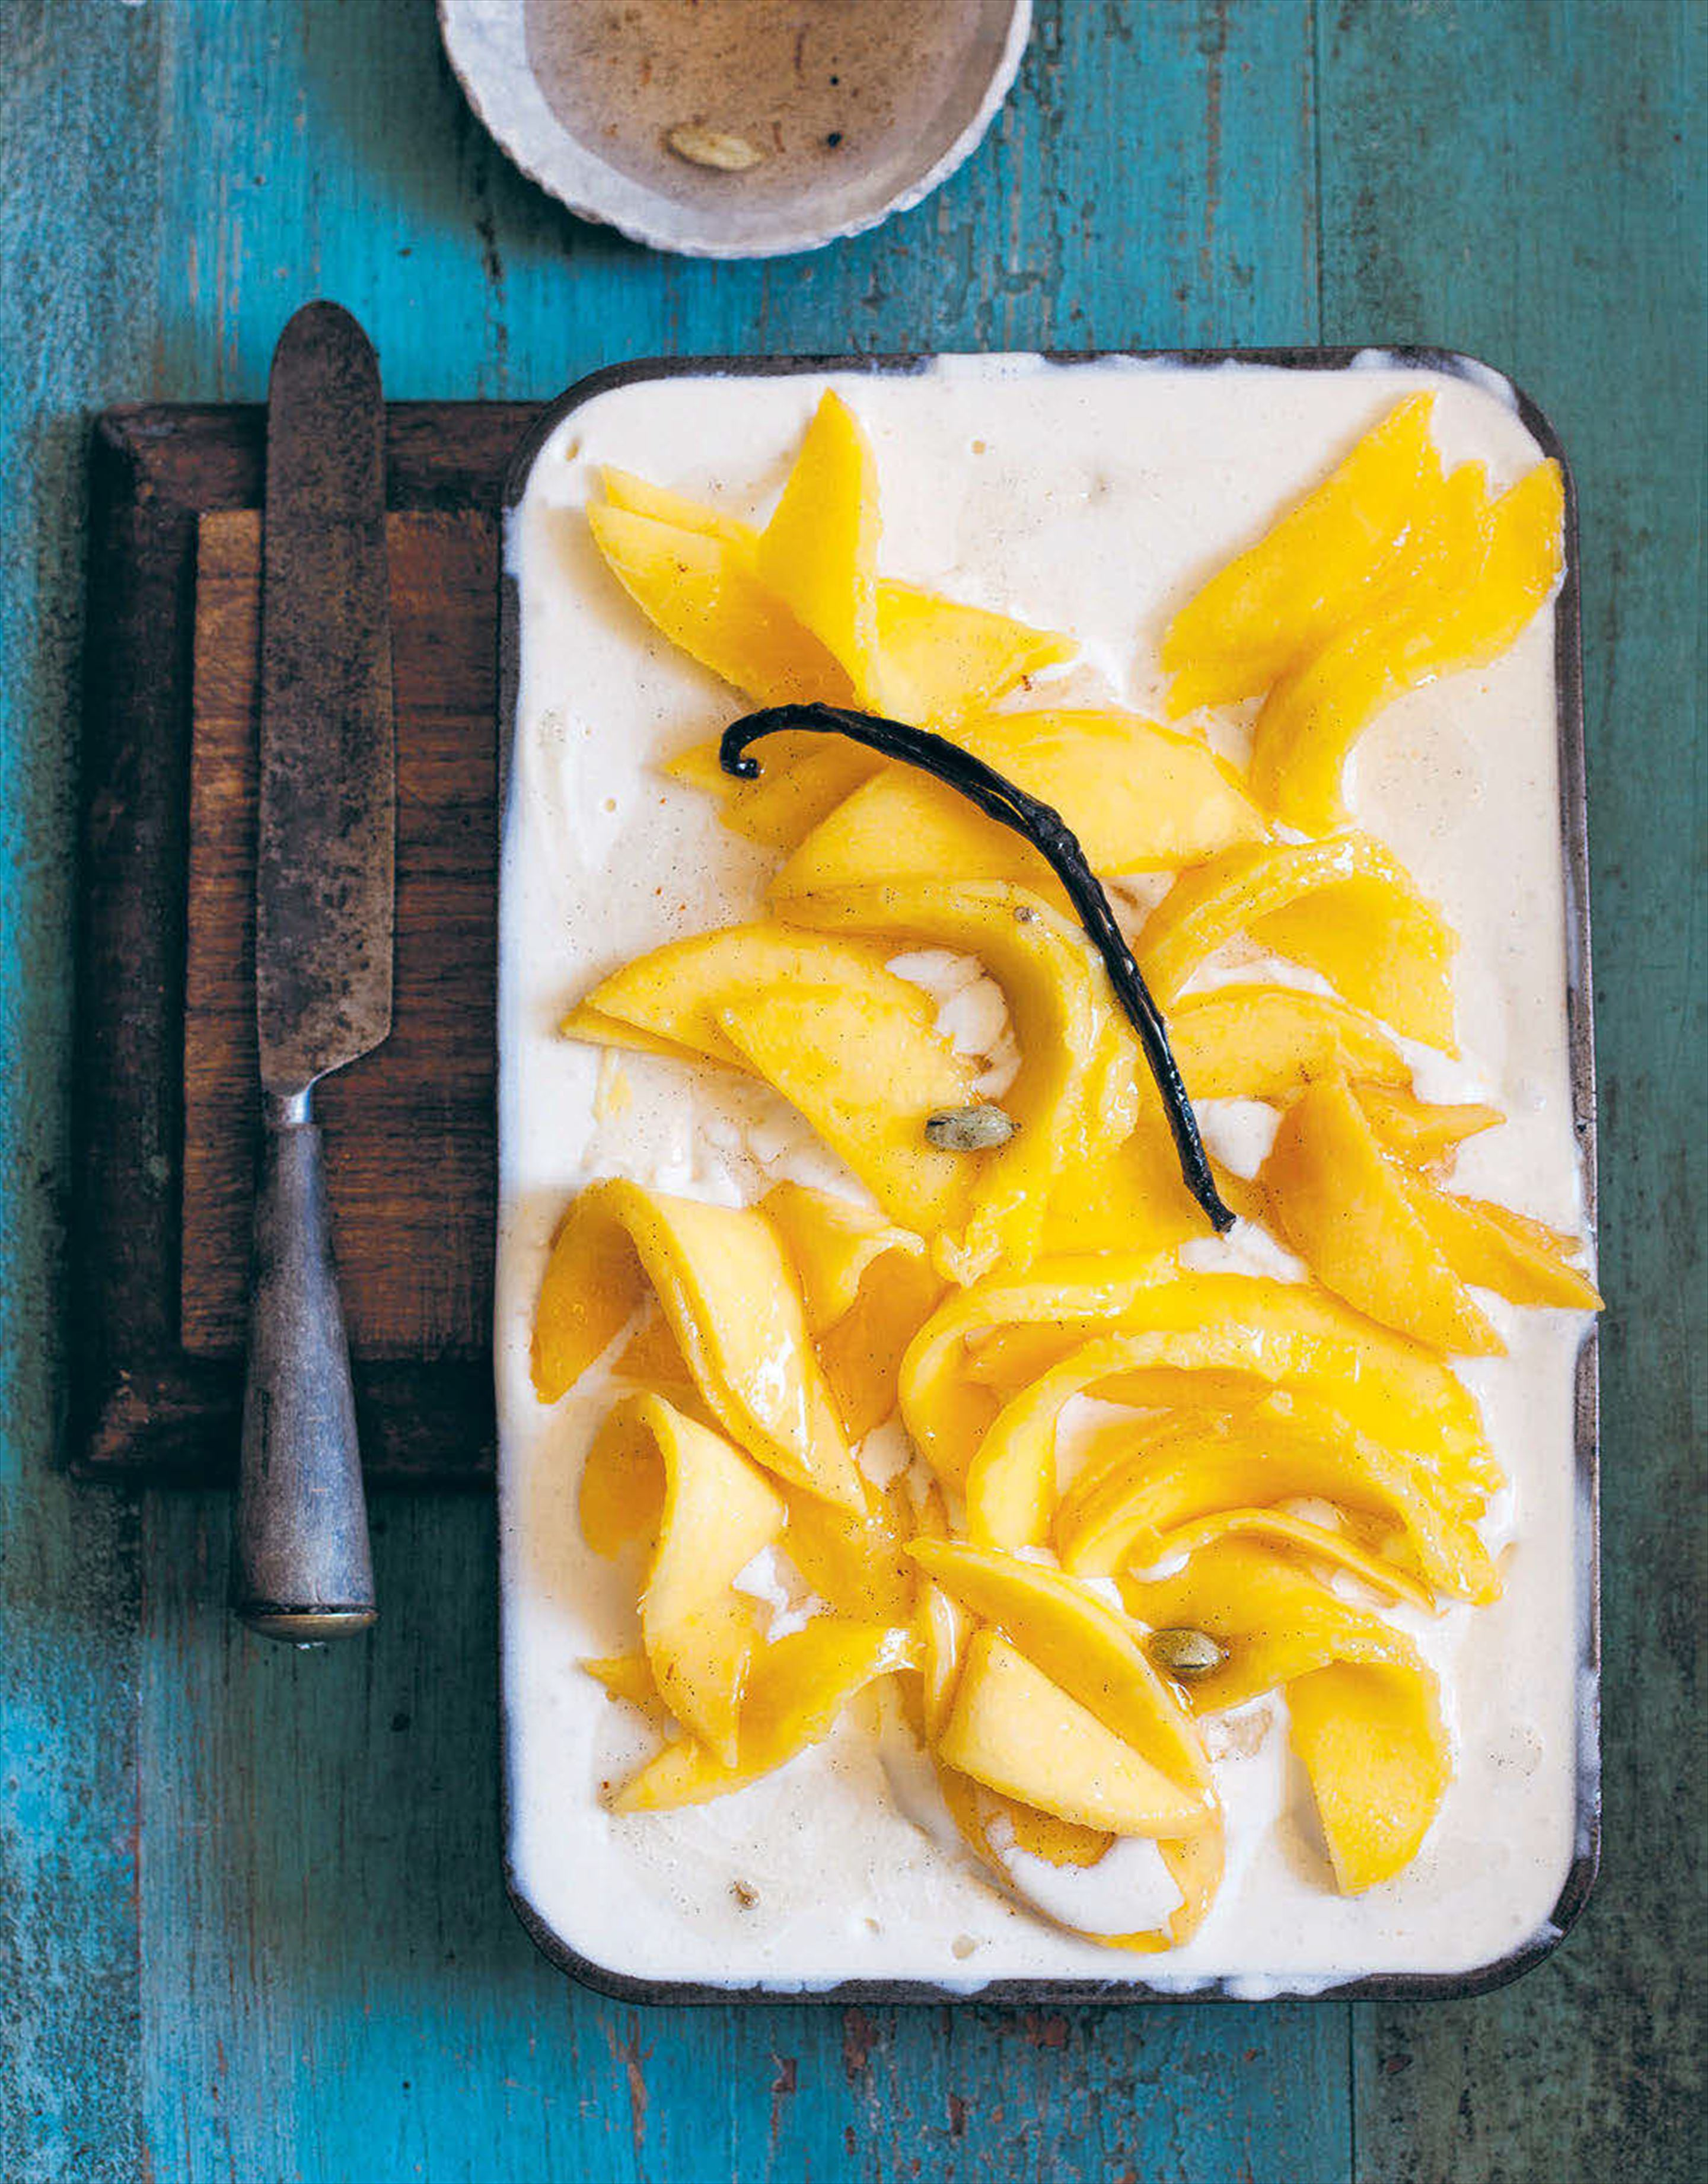 Spiced mango ice cream pie